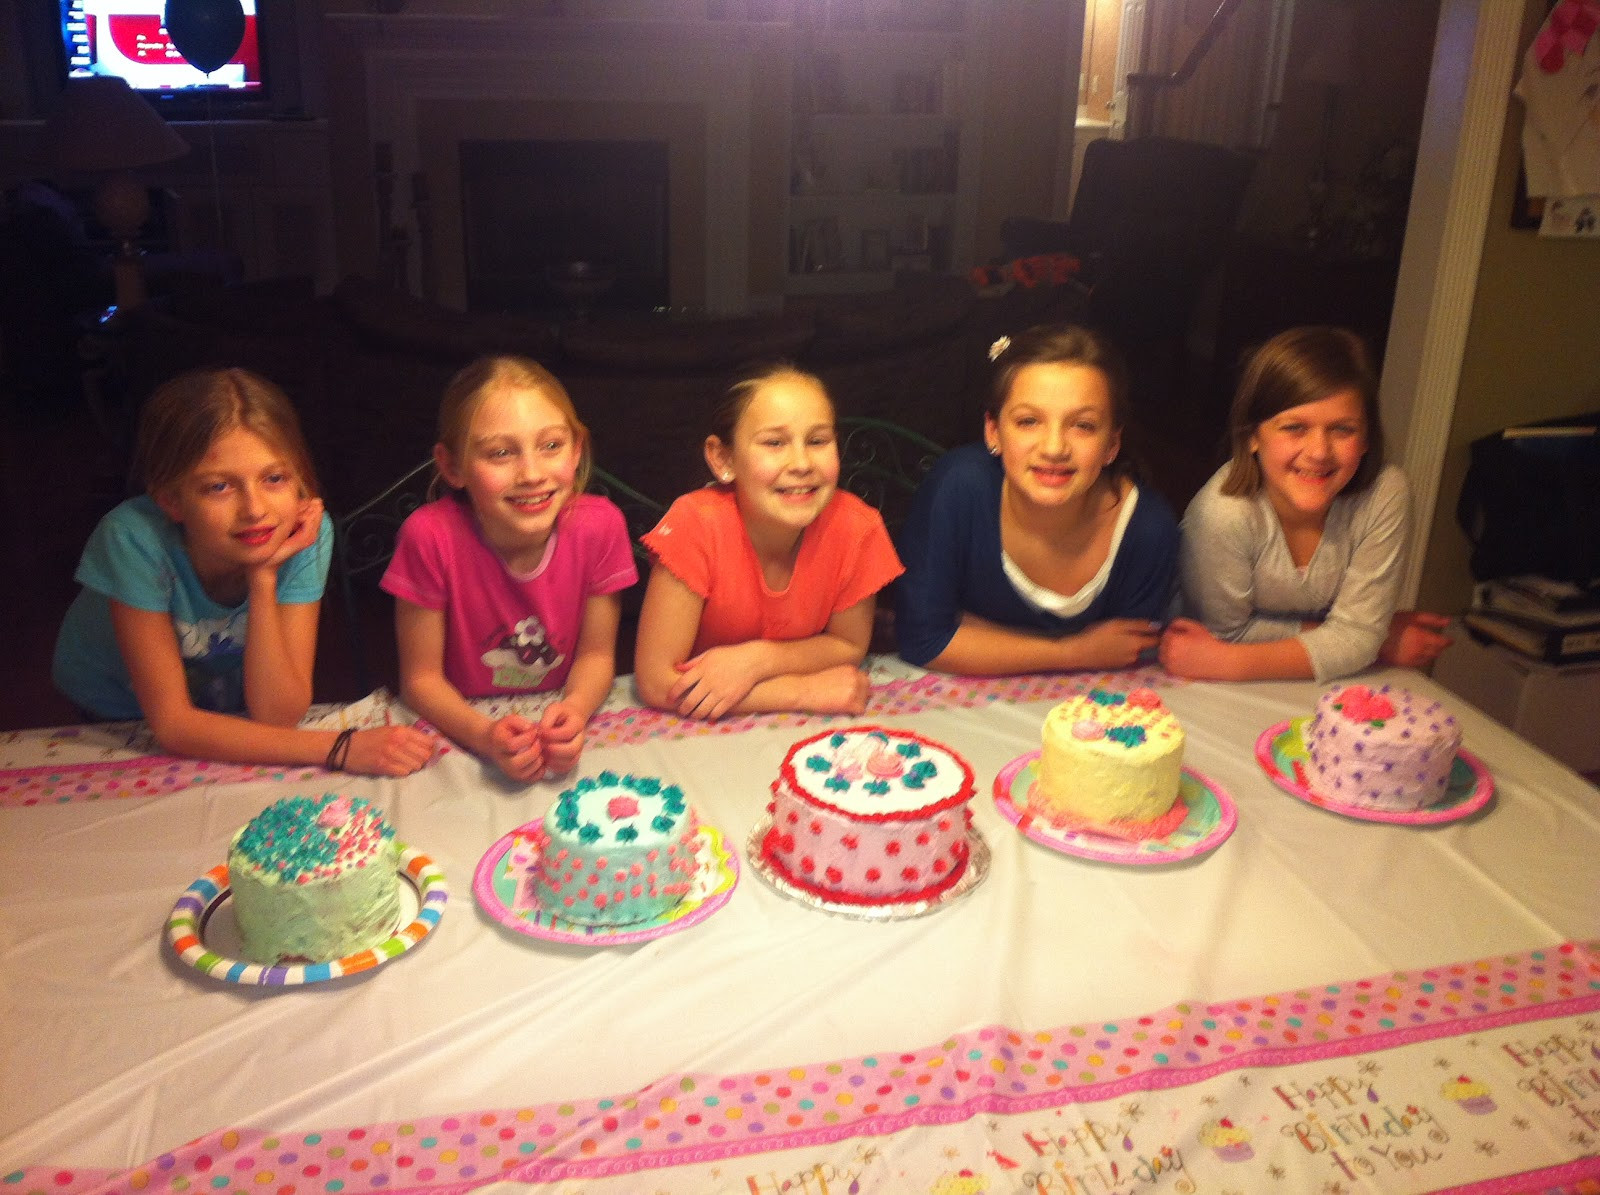 Best ideas about 8 Year Old Birthday Party . Save or Pin Hock Cakes LLC Cake Decorating Birthday Party Now.